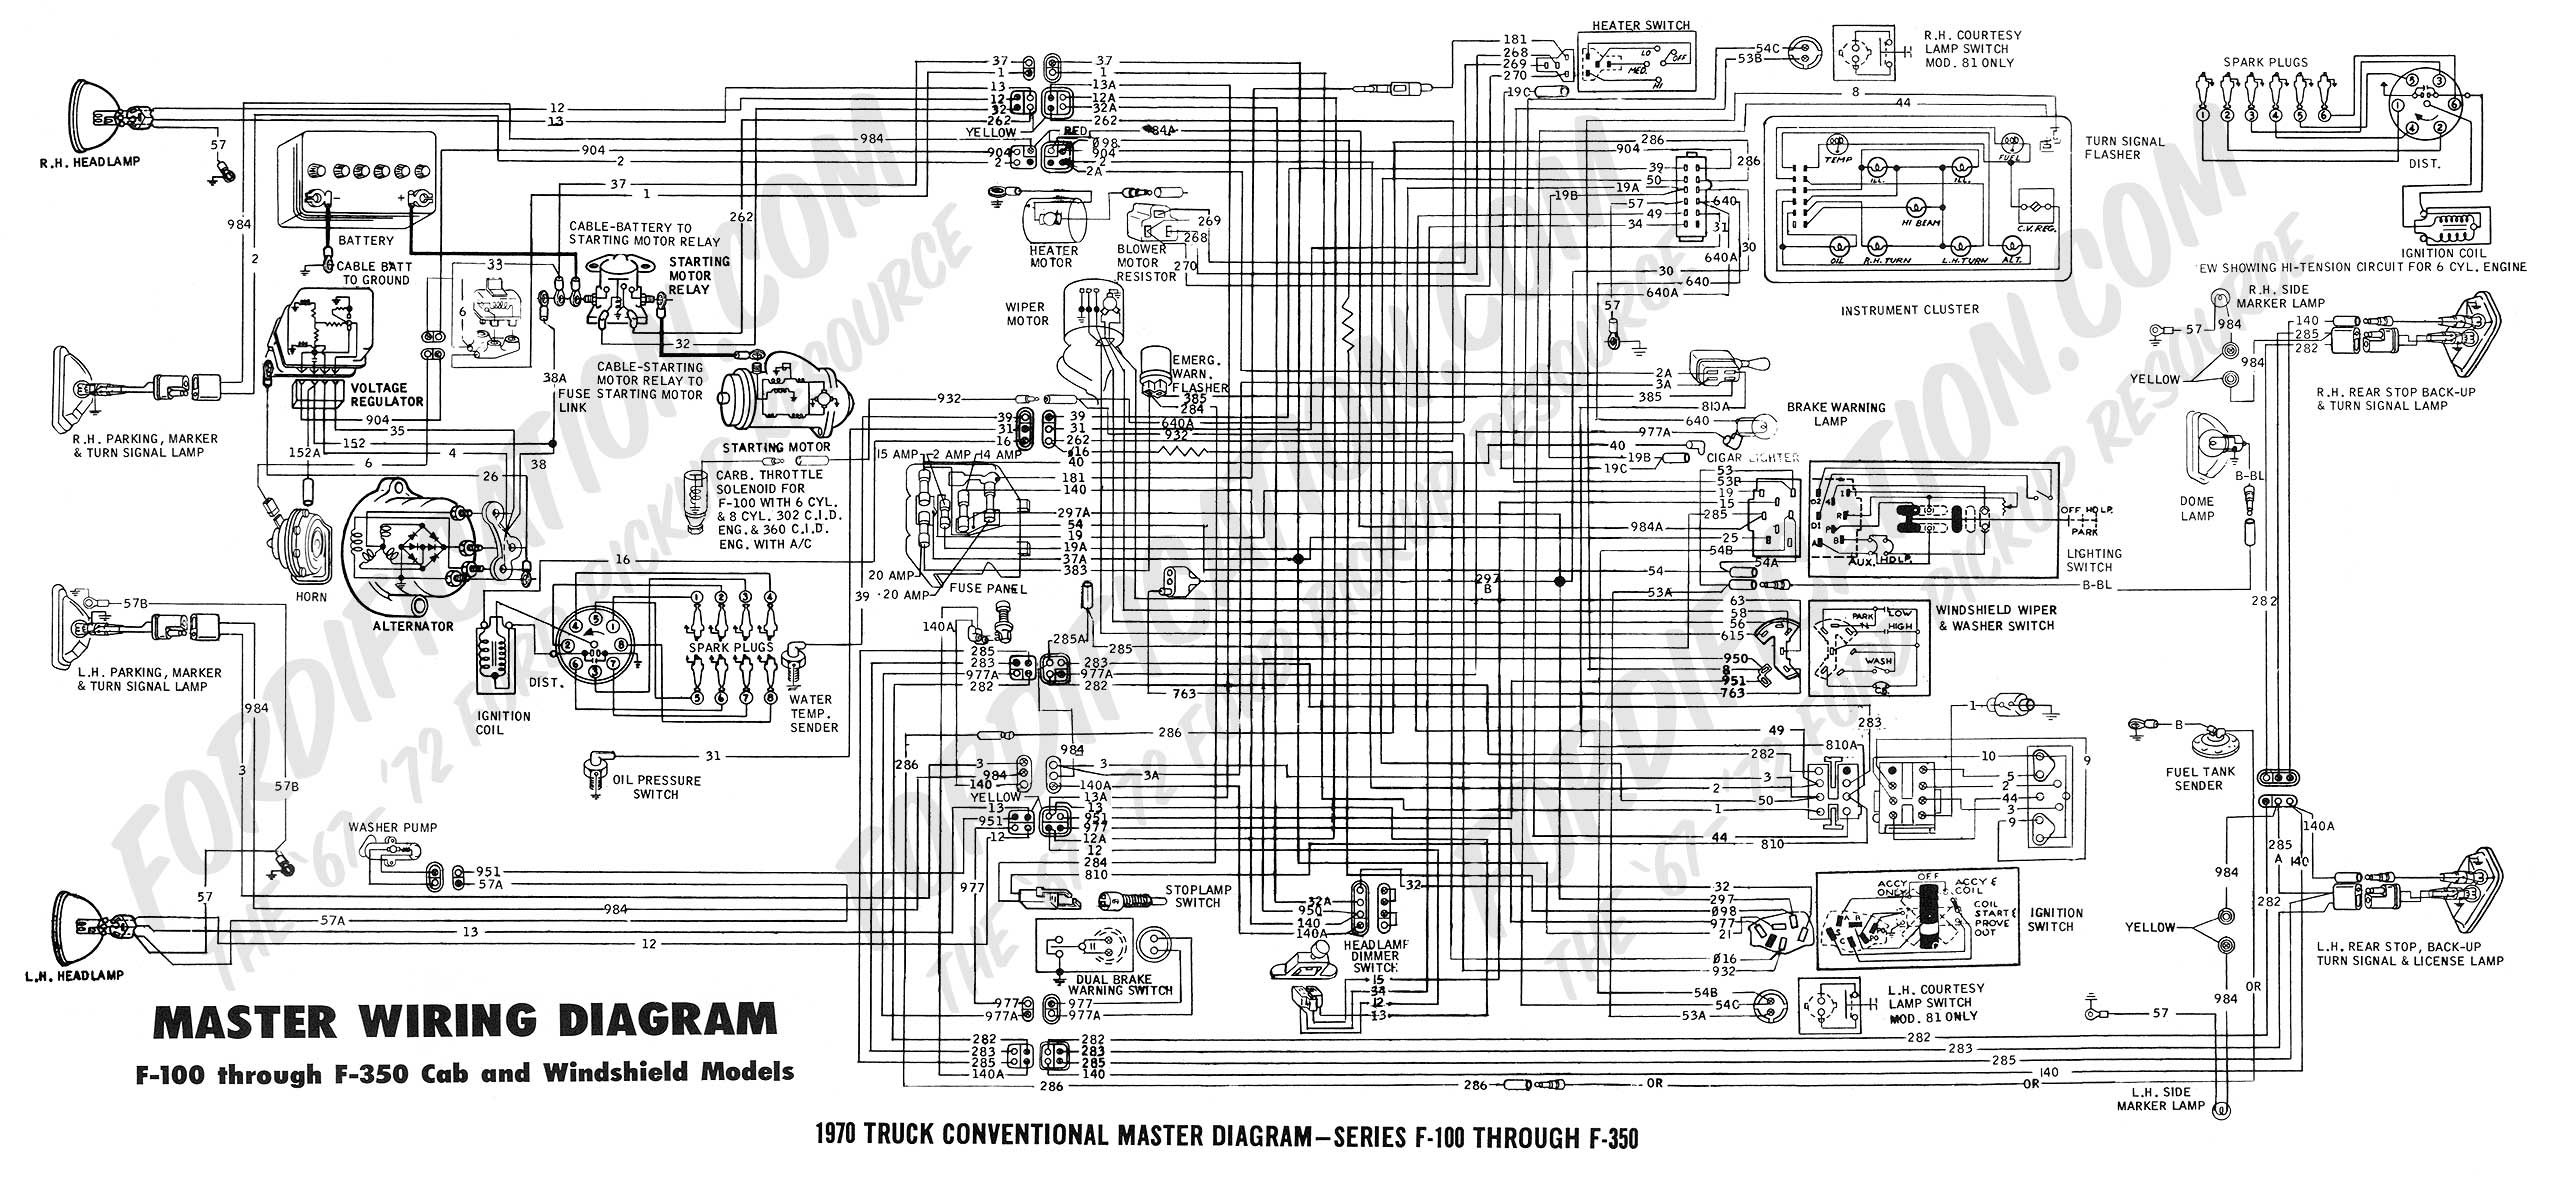 2001 Camaro Turn Signal Wiring Harness Data Diagrams 70 Chevy Pickup Diagram Ford Truck Technical Drawings And Schematics Section H 1972 F 100 Relay